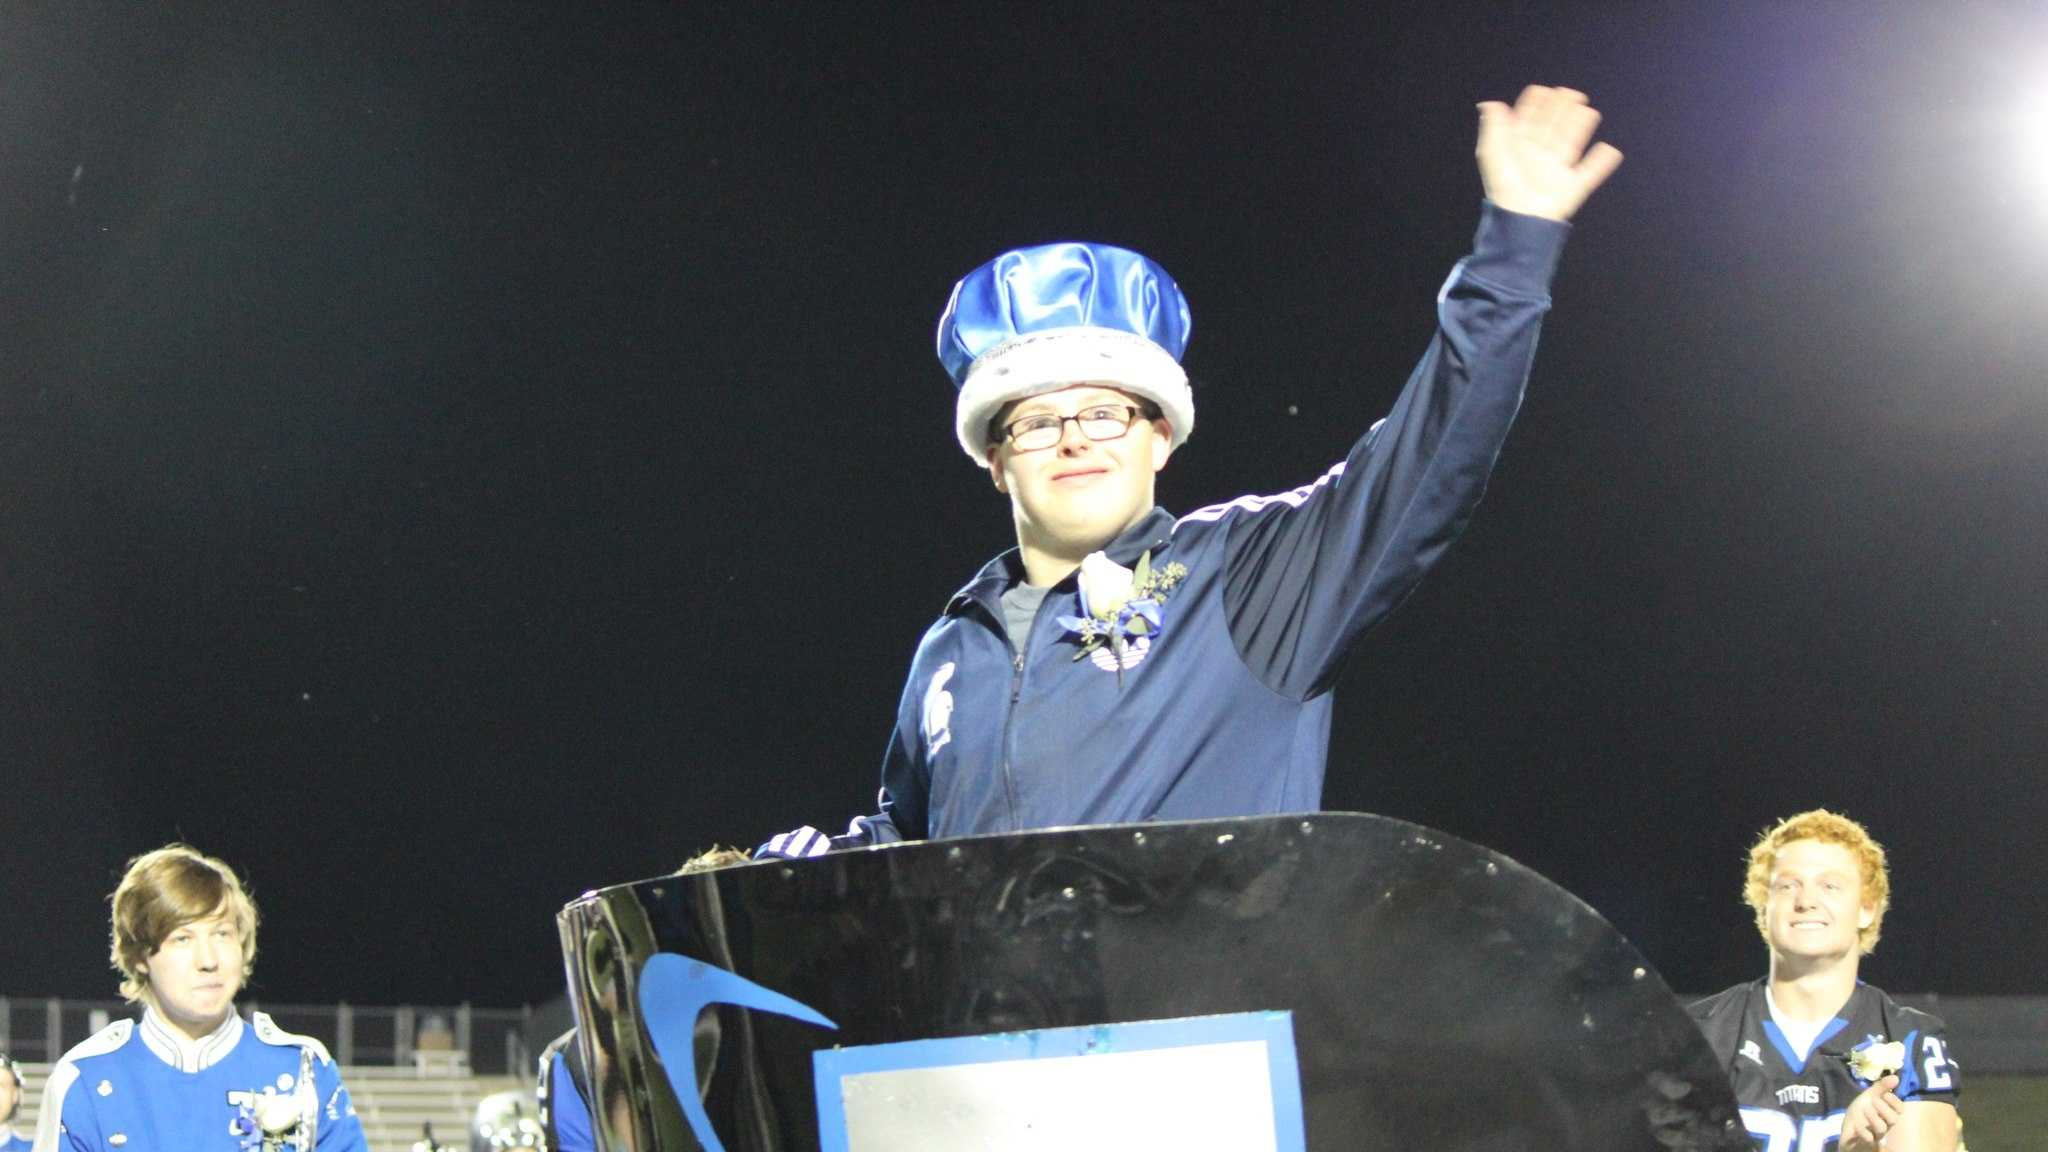 Special needs teen crowned Homecoming King